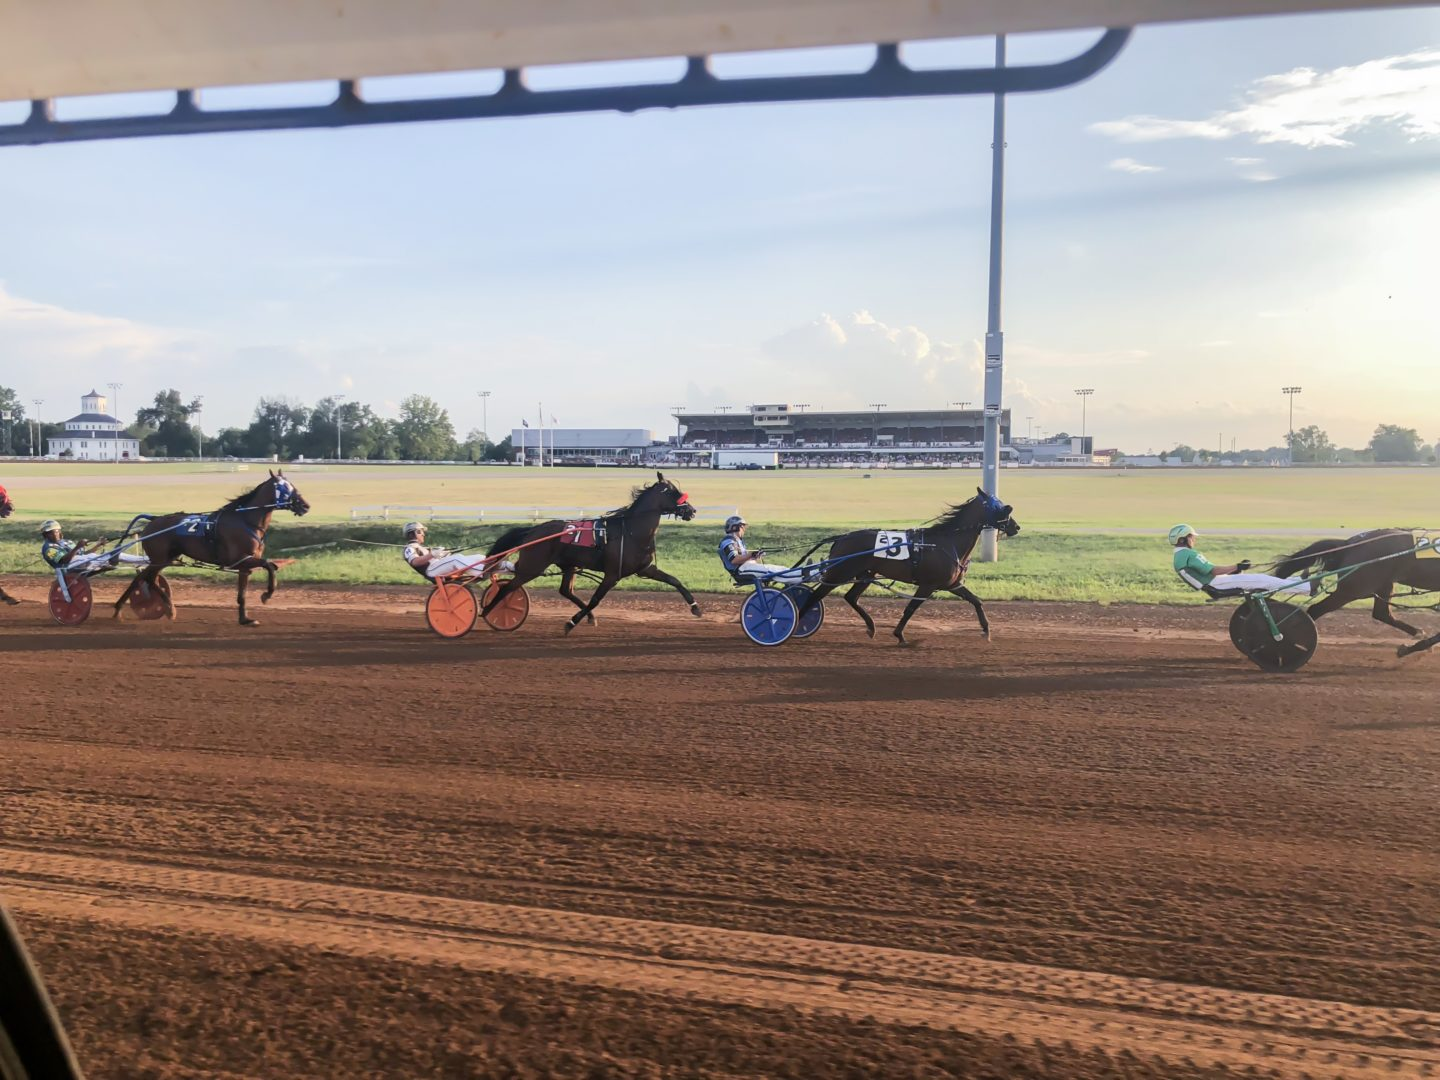 harness racing at red mile race track